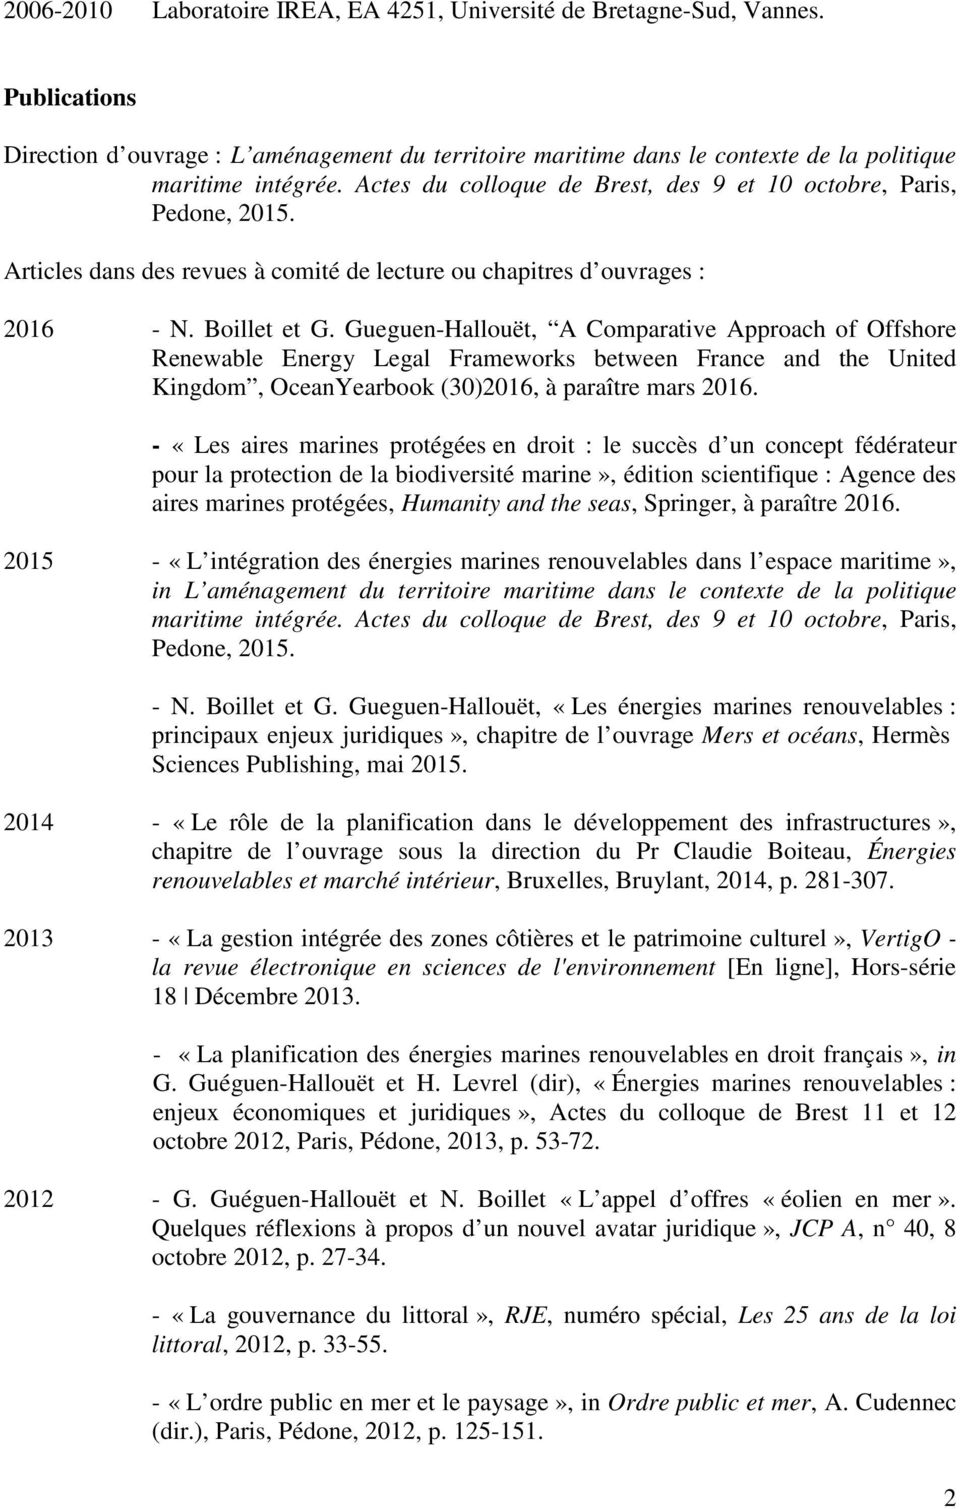 Gueguen-Hallouët, A Comparative Approach of Offshore Renewable Energy Legal Frameworks between France and the United Kingdom, OceanYearbook (30)2016, à paraître mars 2016.